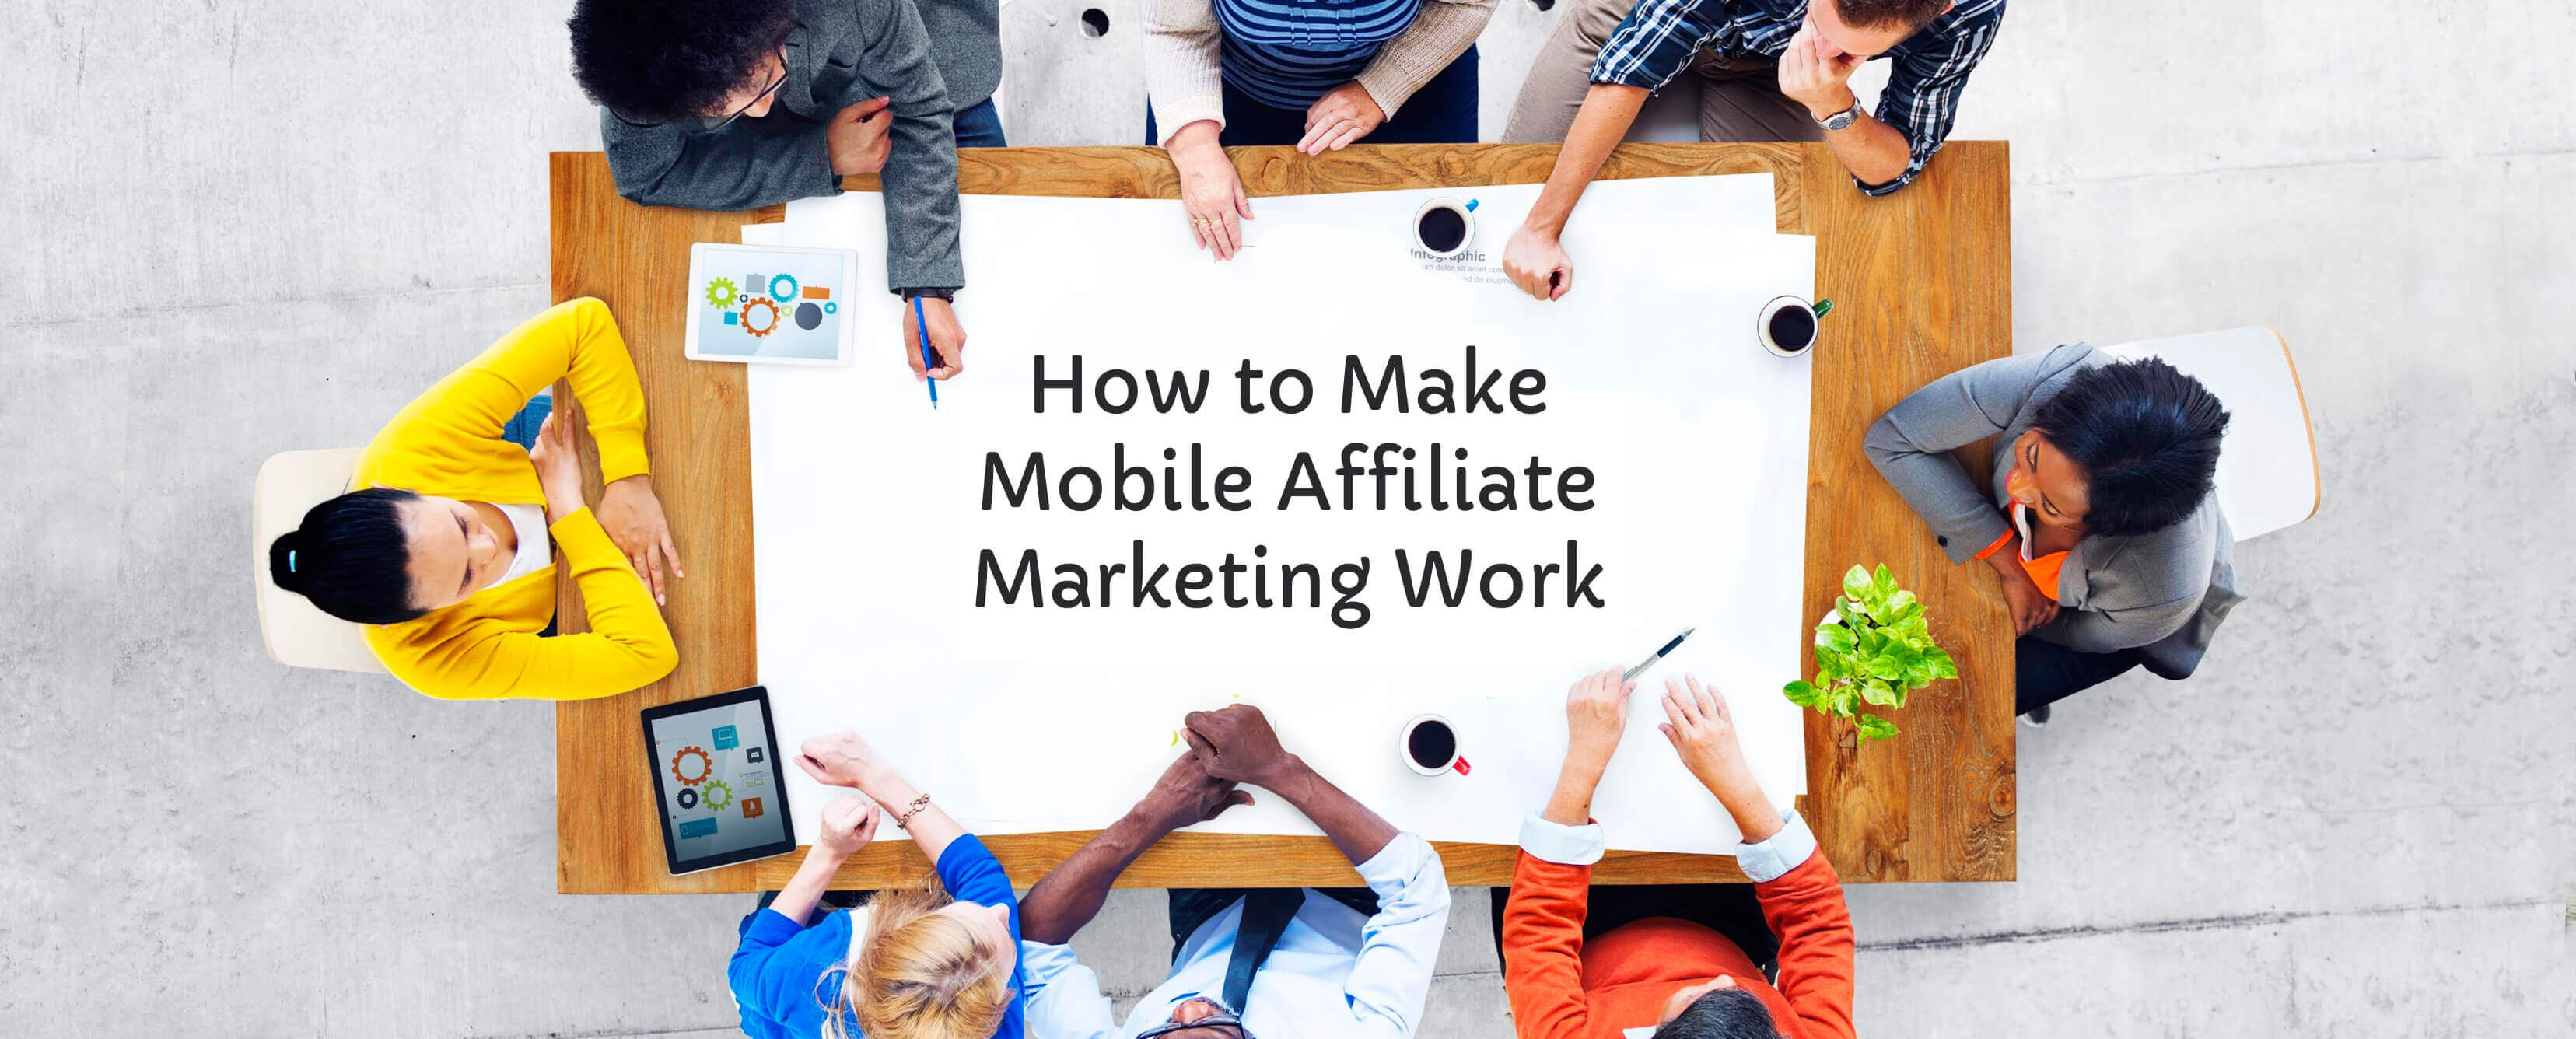 How to Make Mobile Affiliate Marketing Work